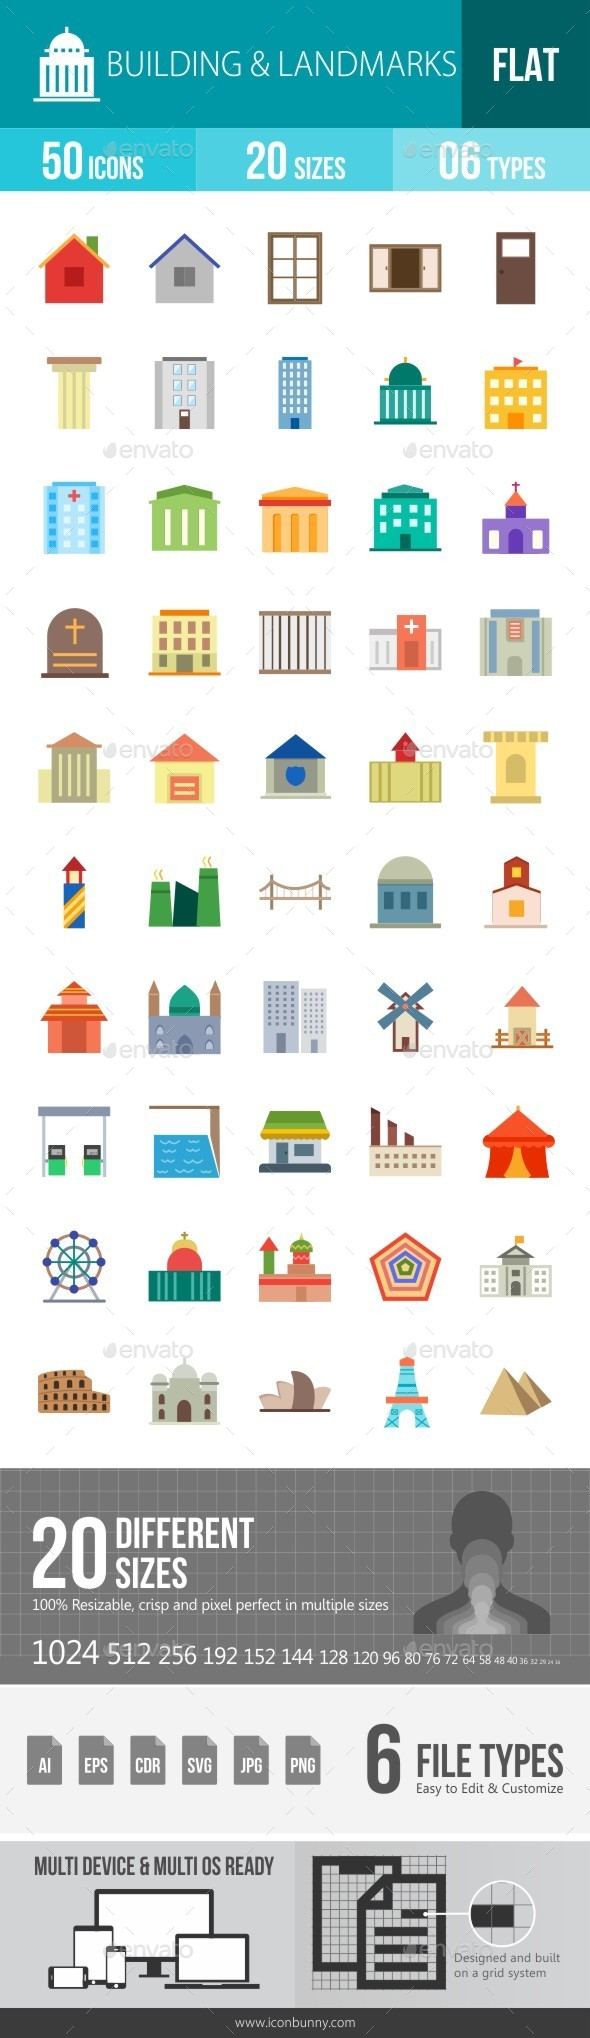 Building & Landmarks Flat Multicolor Icons - Icons